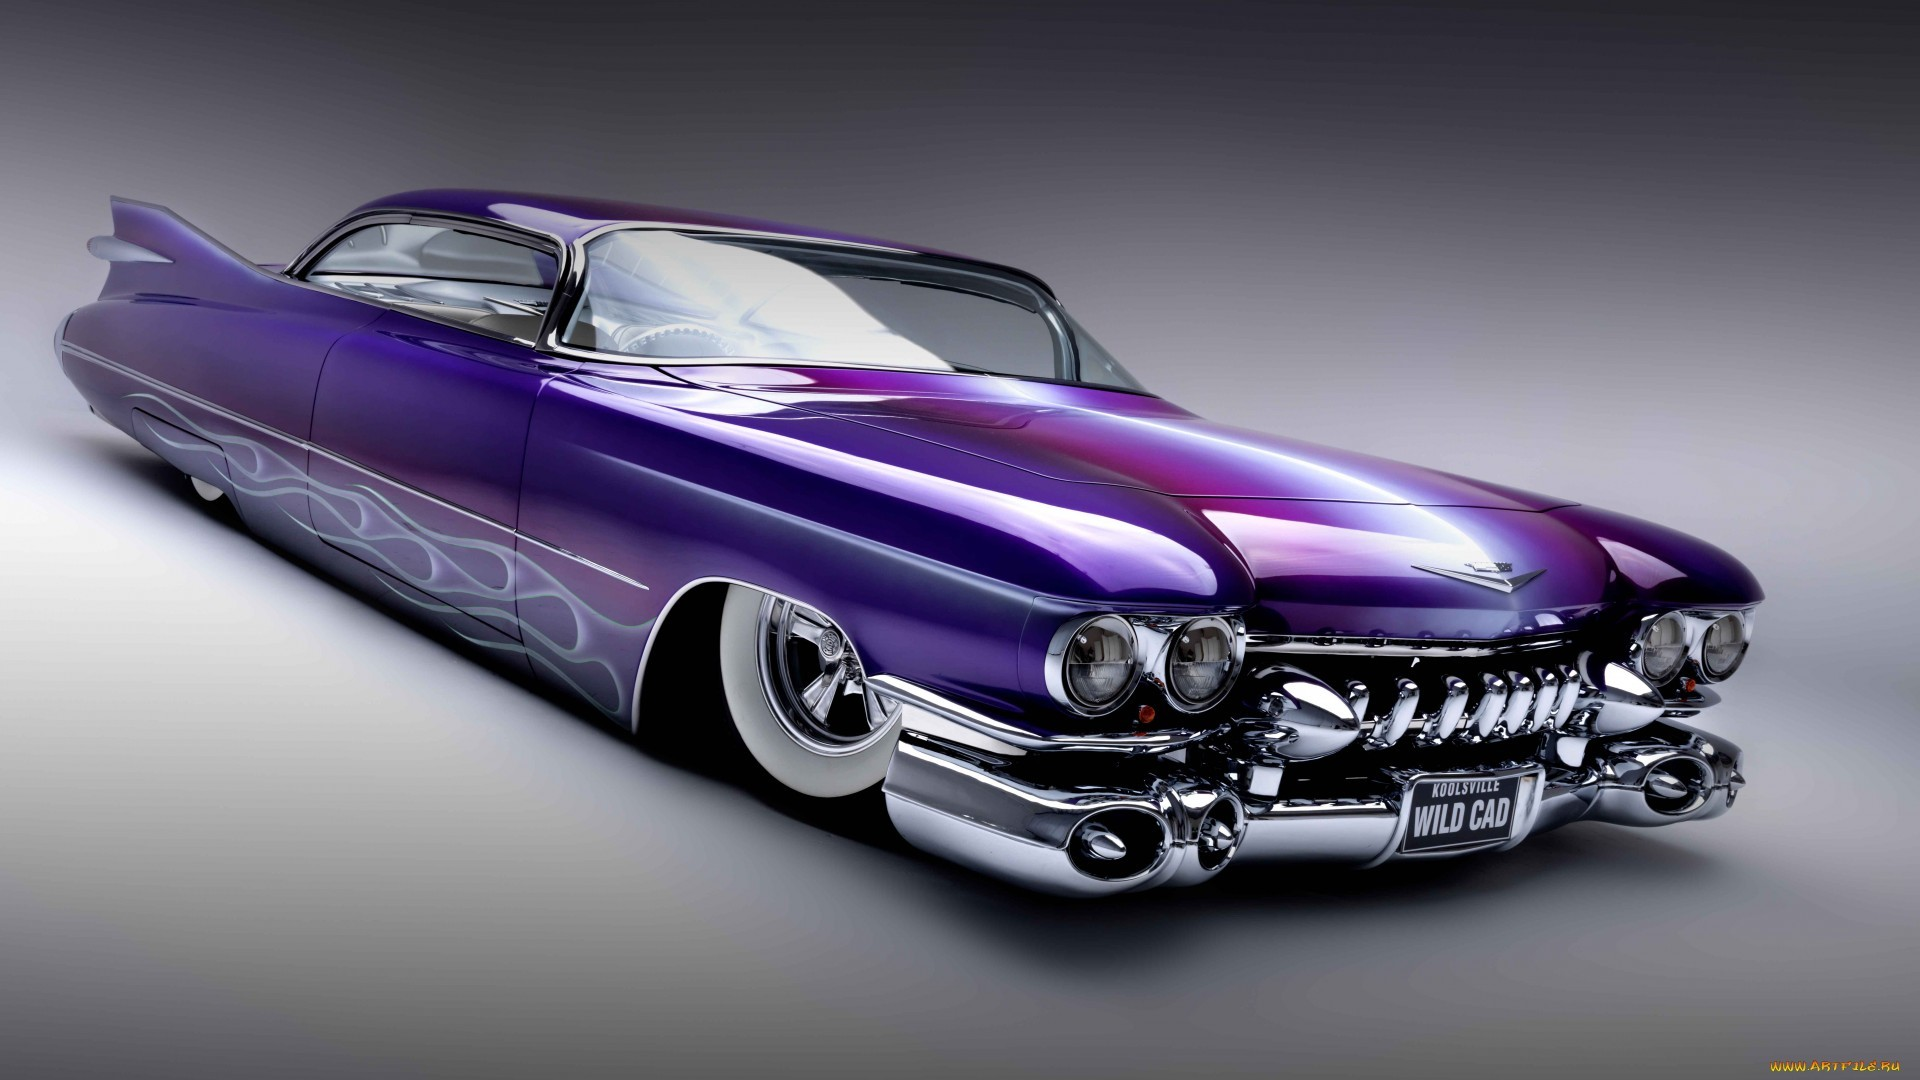 Res: 1920x1080, Best Lowrider Car Wallpapers Free High Resolution Backgrounds Of Mobile